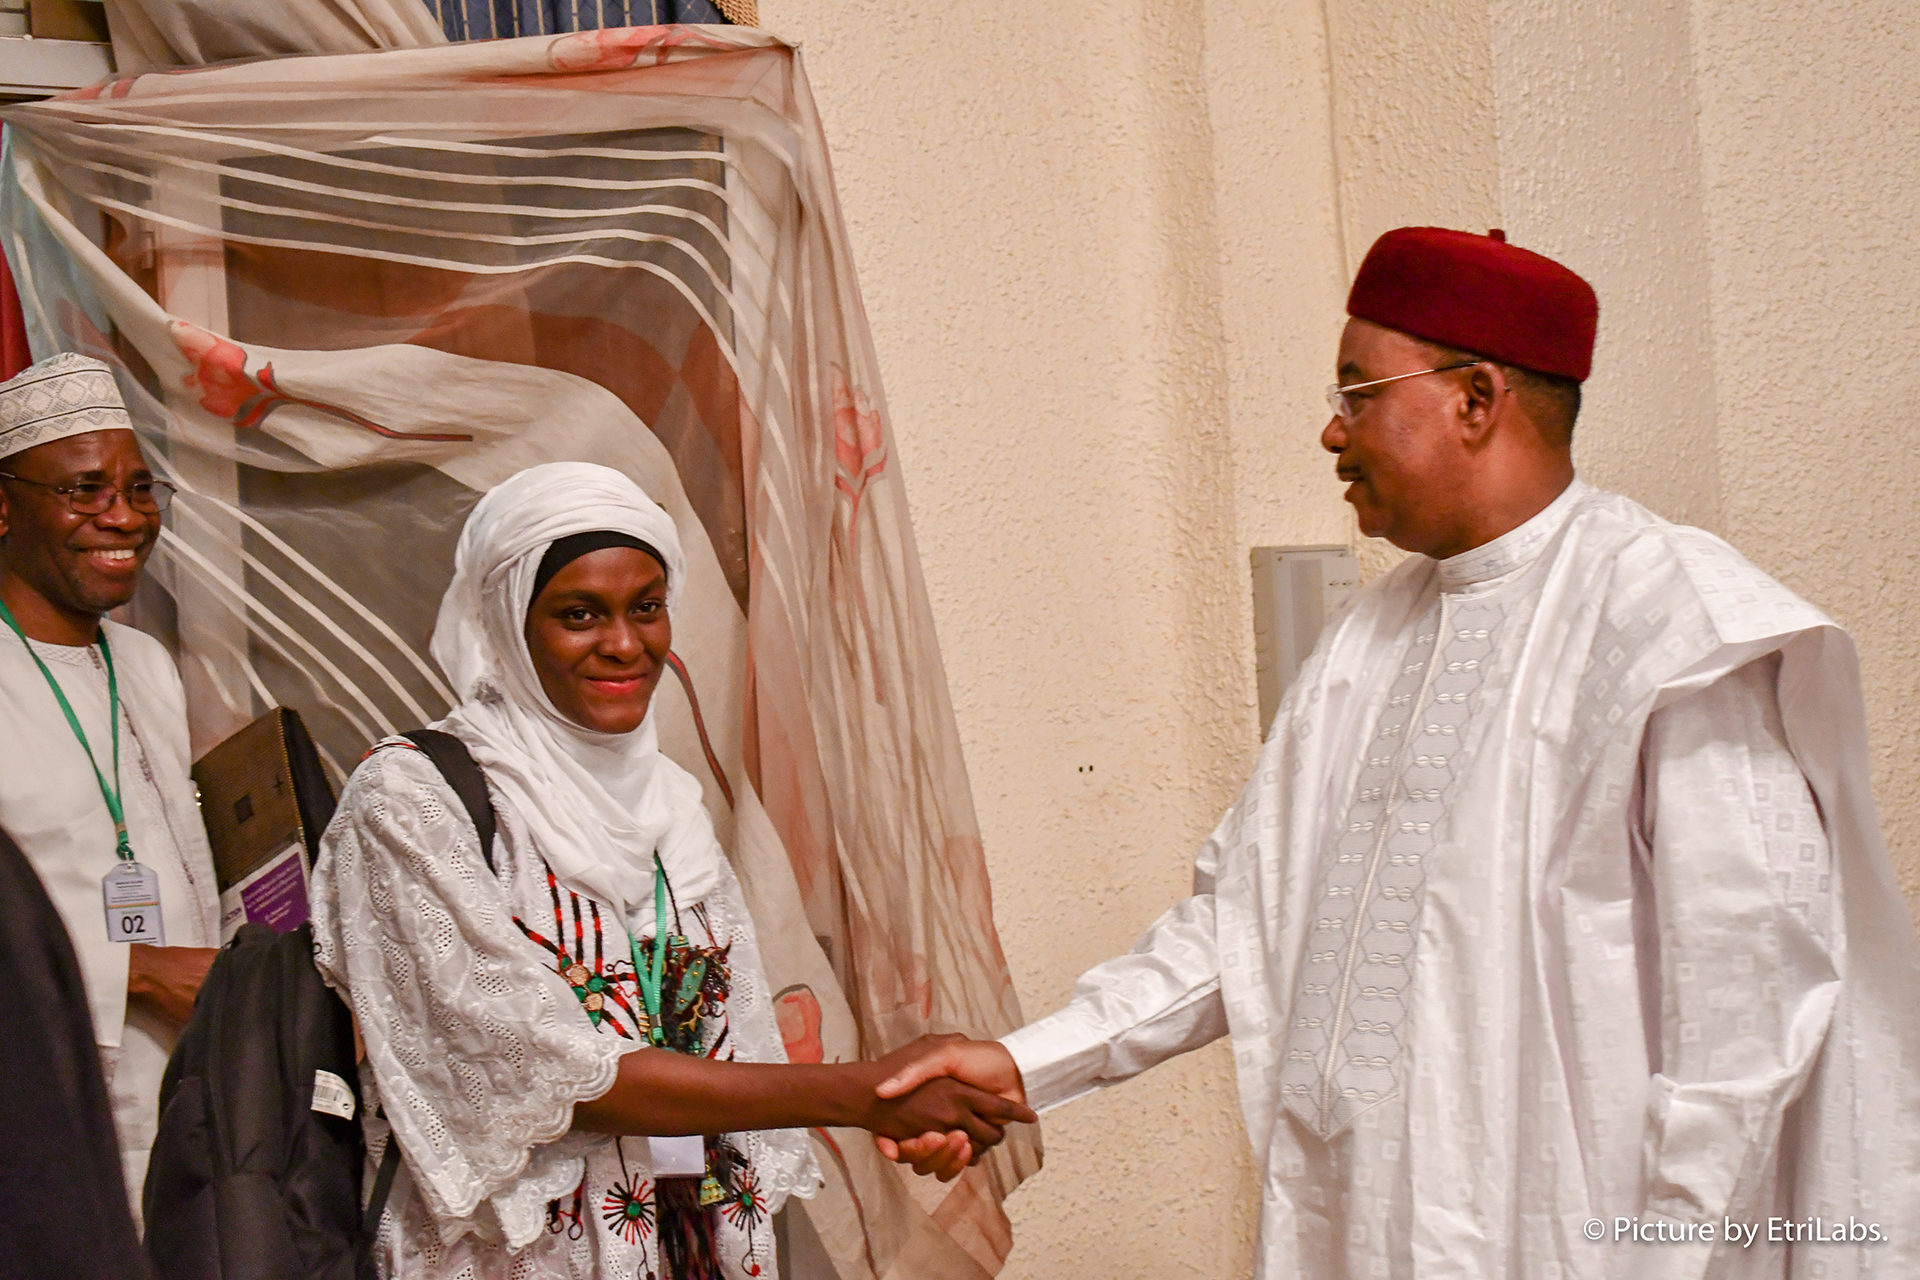 President Mahamadou Issoufou shakes hands with Mariama Abdou Gado, president of the Niger youth ambassador network. Photo by EtriLabs.